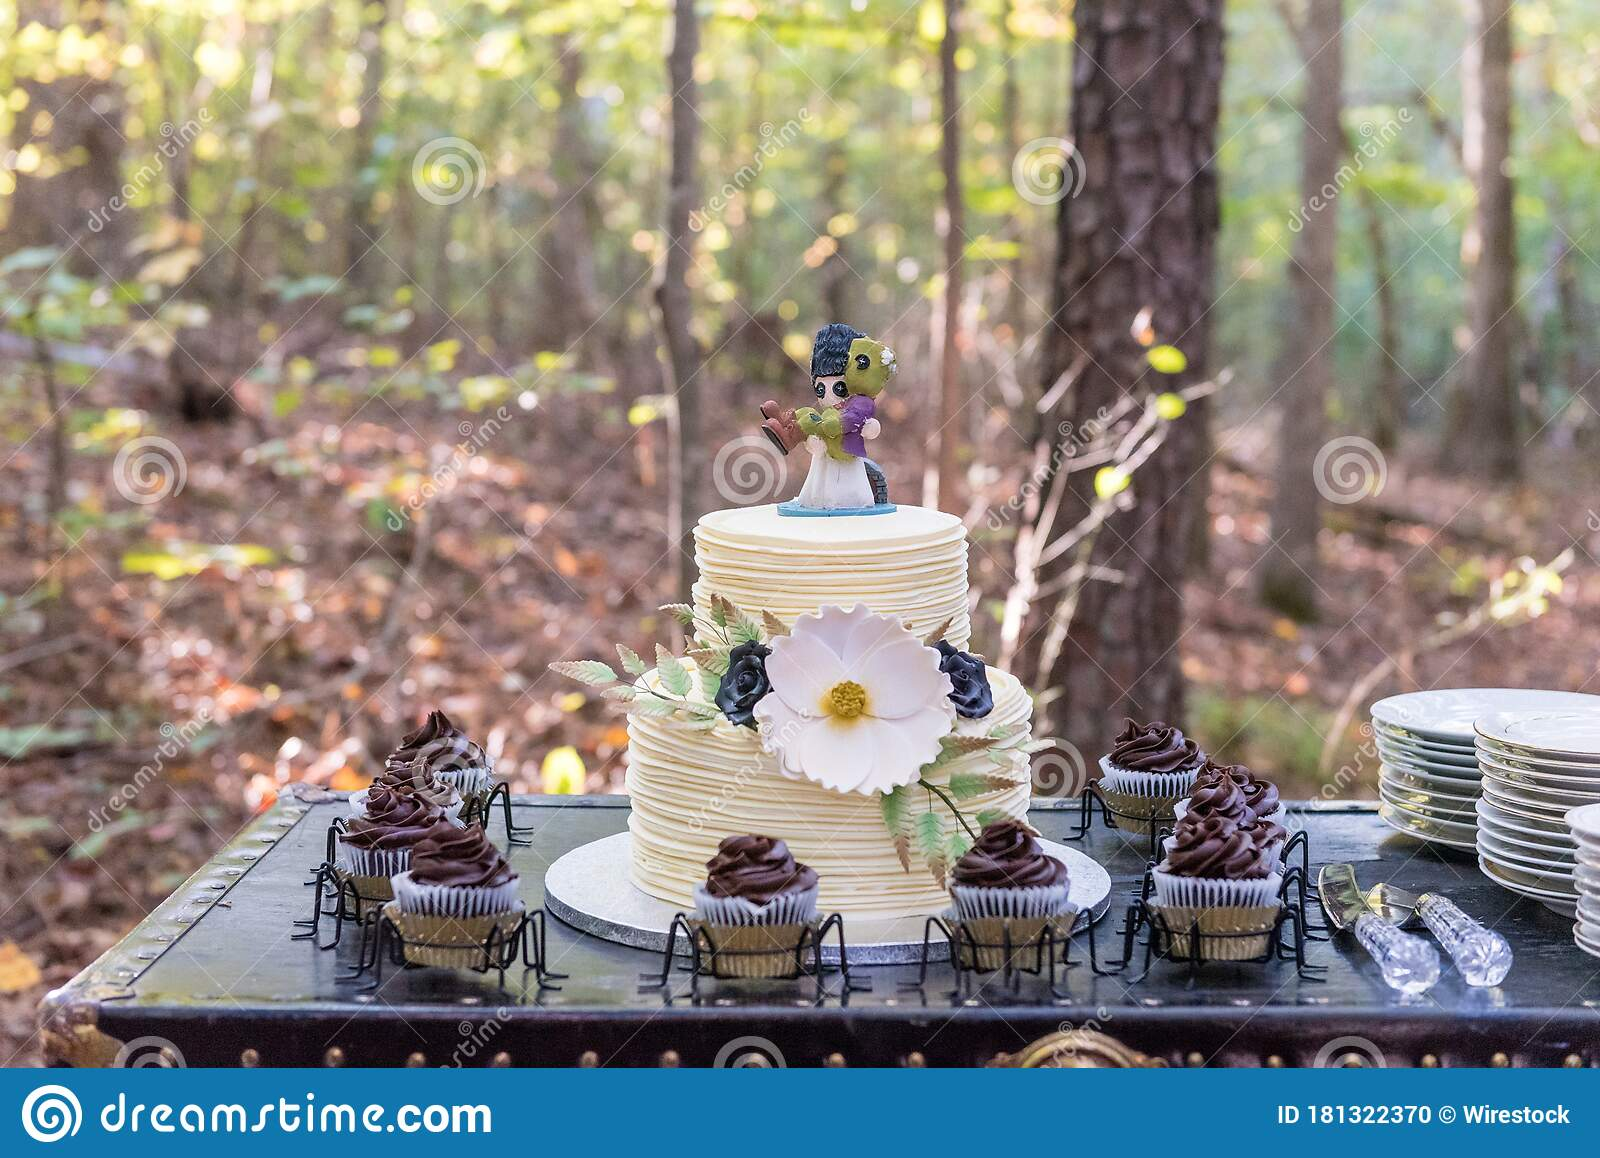 Closeup Selective Focus Shot Of A Wedding Cake With Chocolate Cupcakes With A Forest On The Back Stock Photo Image Of Setting Restaurant 181322370